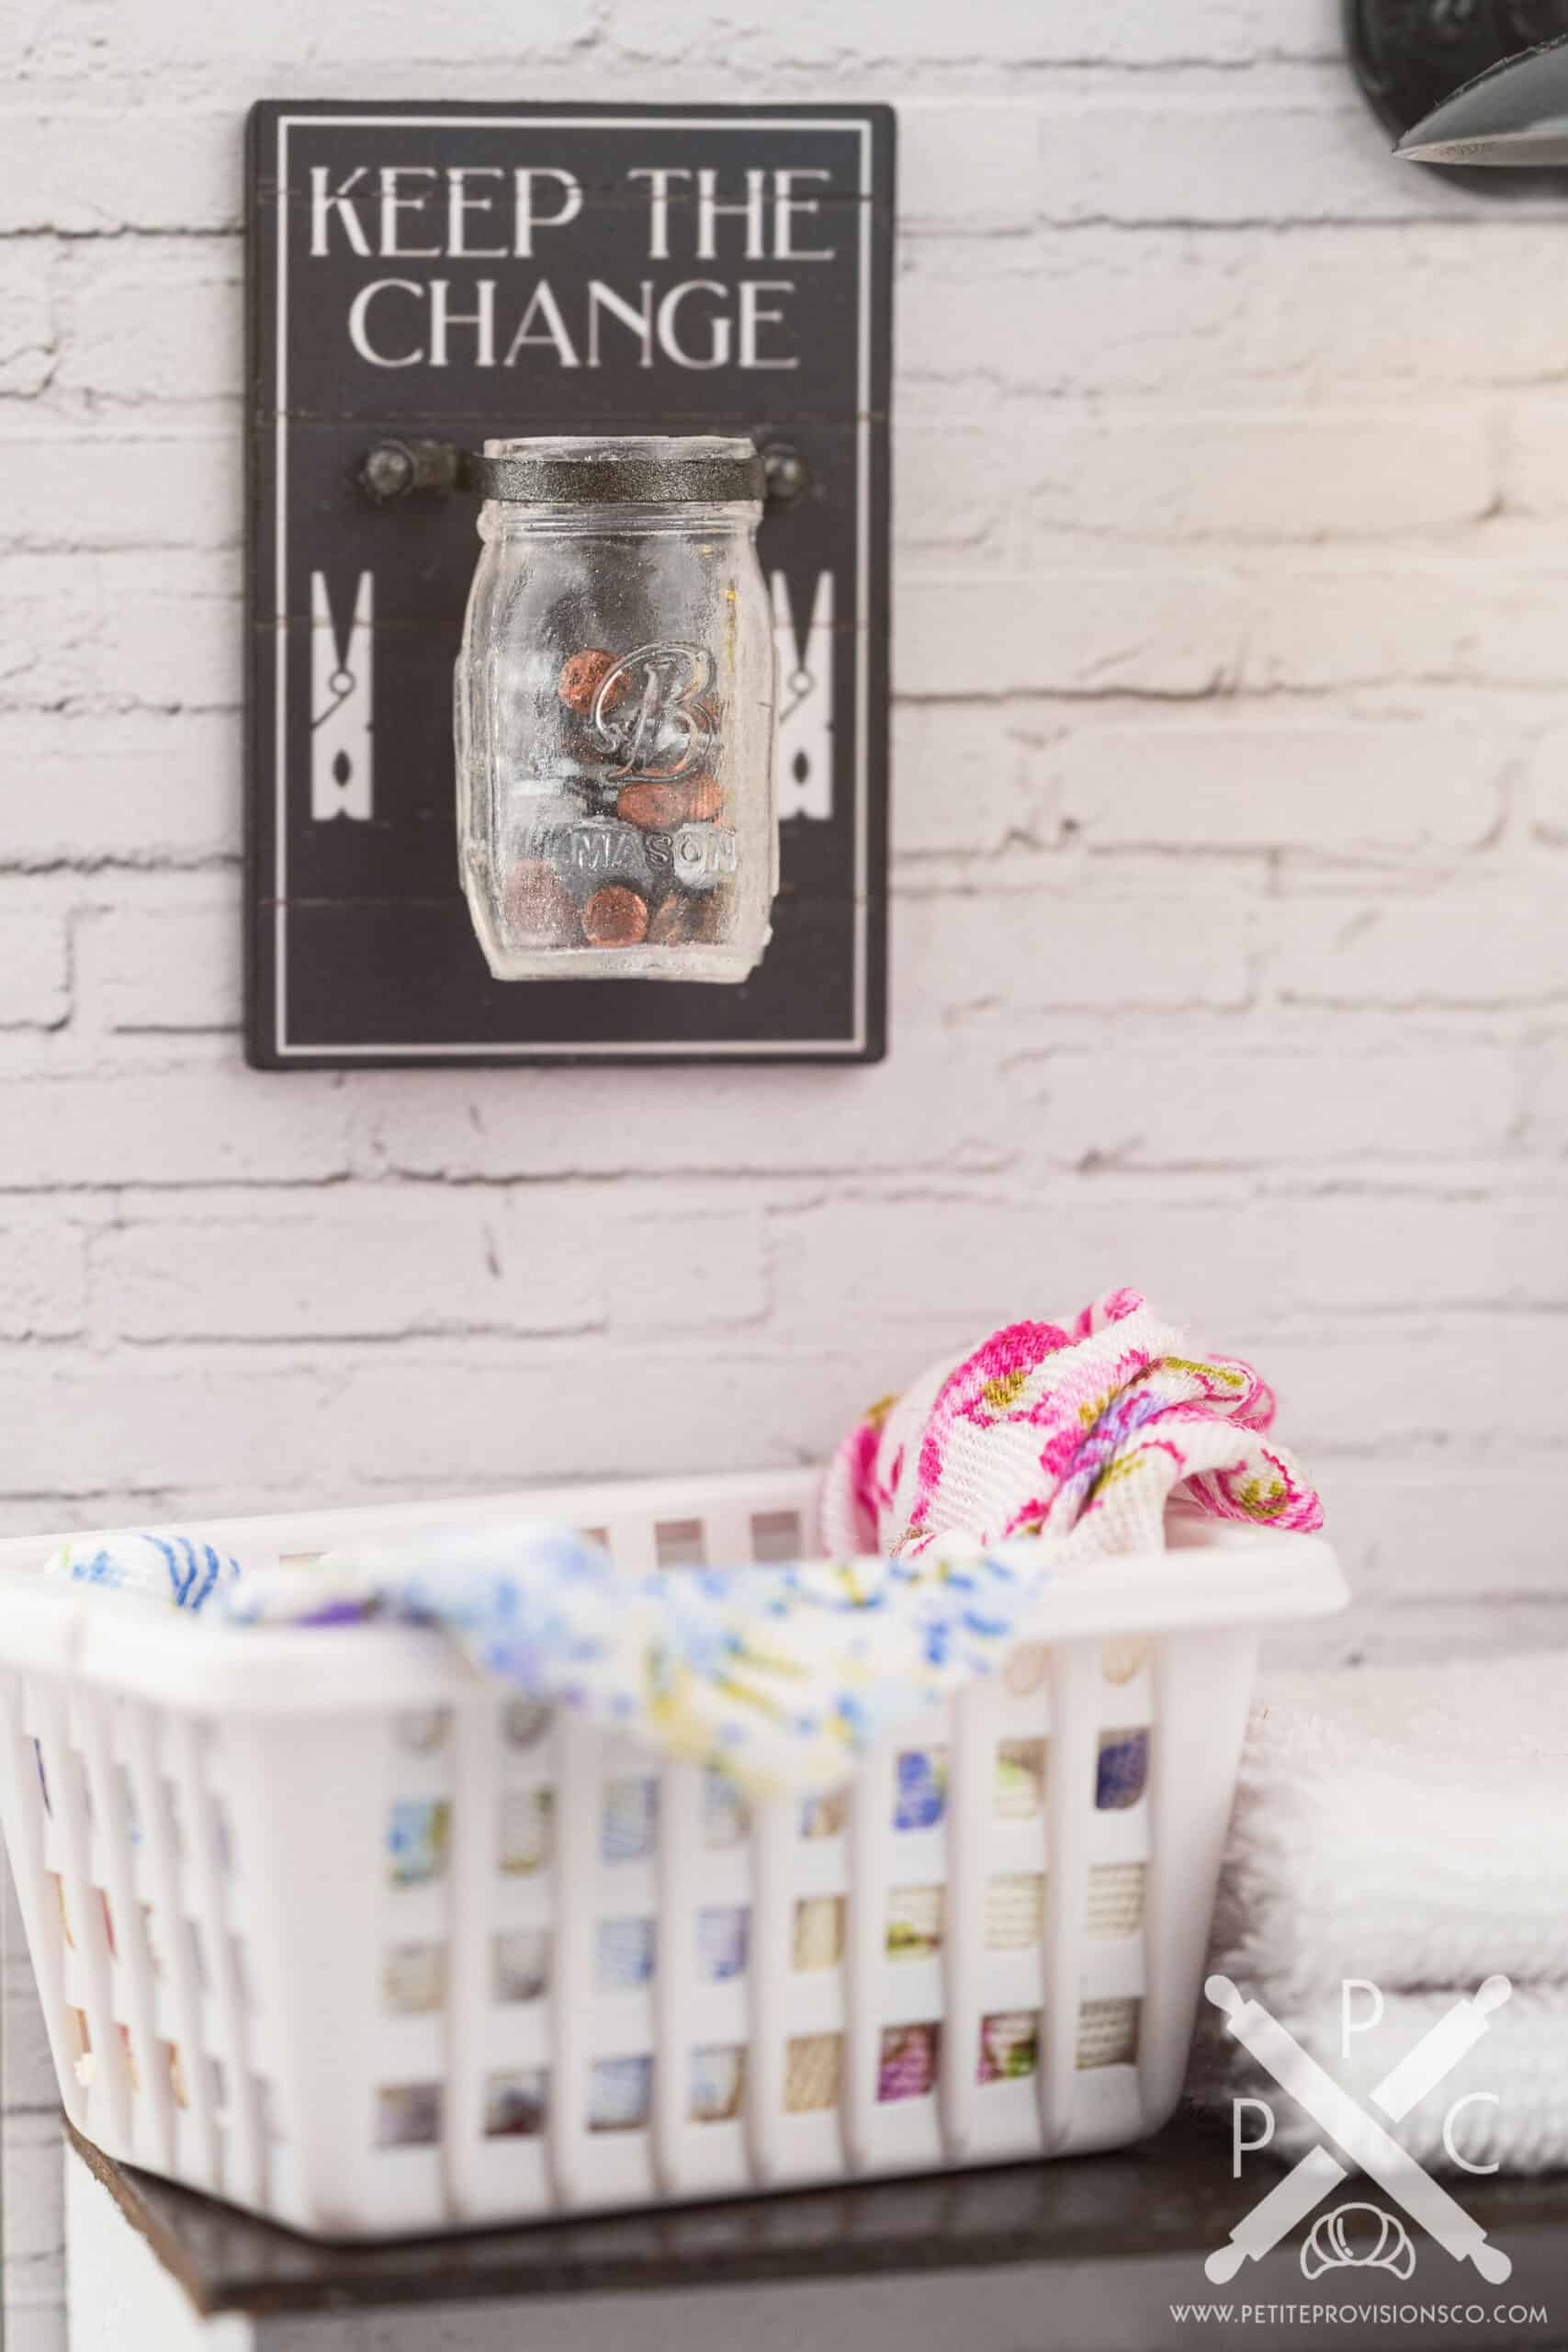 A dollhouse miniature keep the change jar of coins in a one-inch scale laundry room scene with farmhouse decor